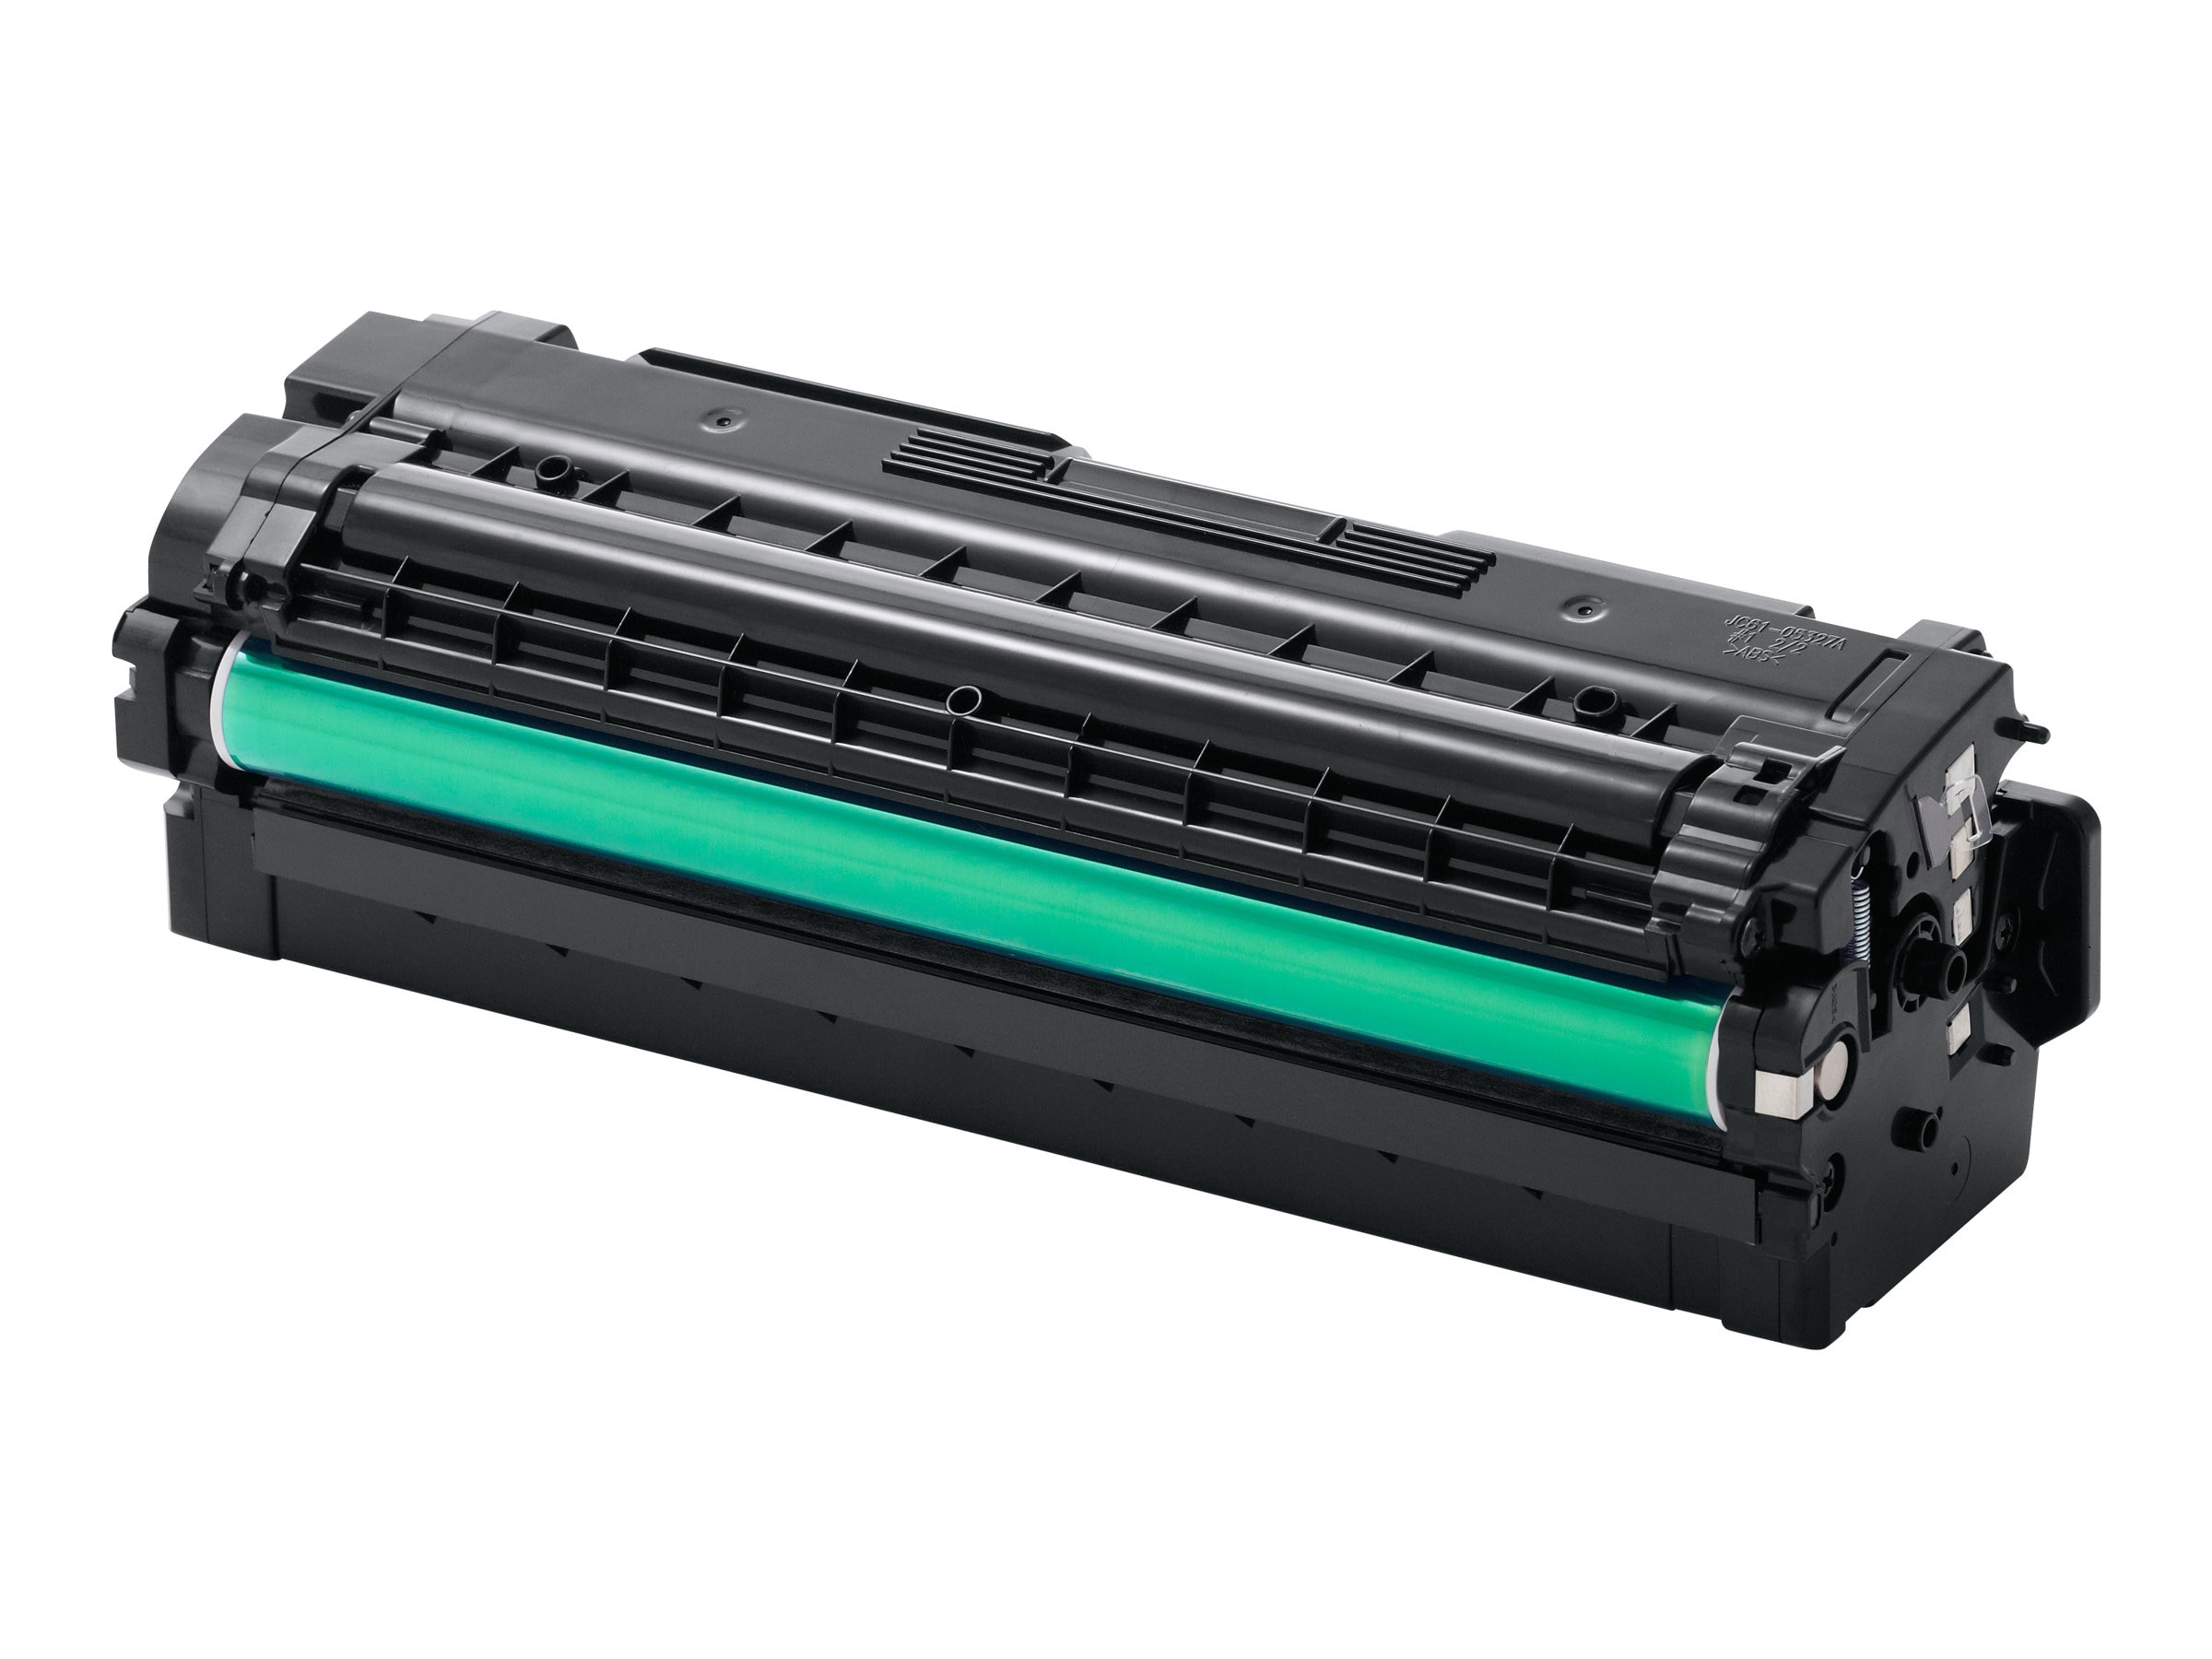 Samsung Black High Yield Toner Cartridge for CLX-6260FD & CLX-6260FW Color MFPs & CLP-680ND Color Printer, CLT-K506L